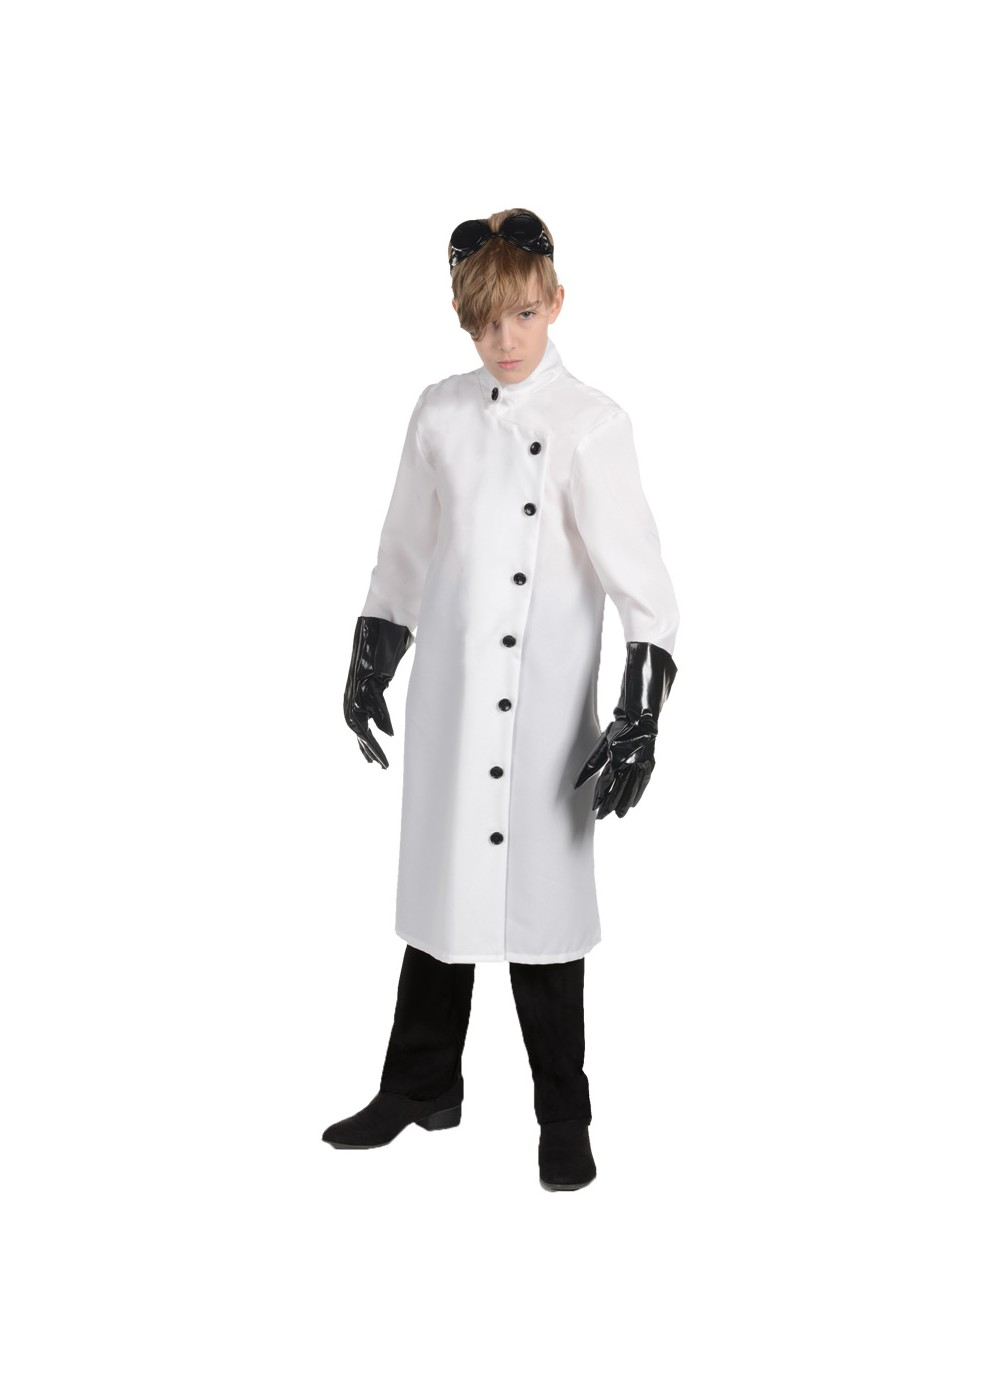 Childrens Alive Scientist Costume